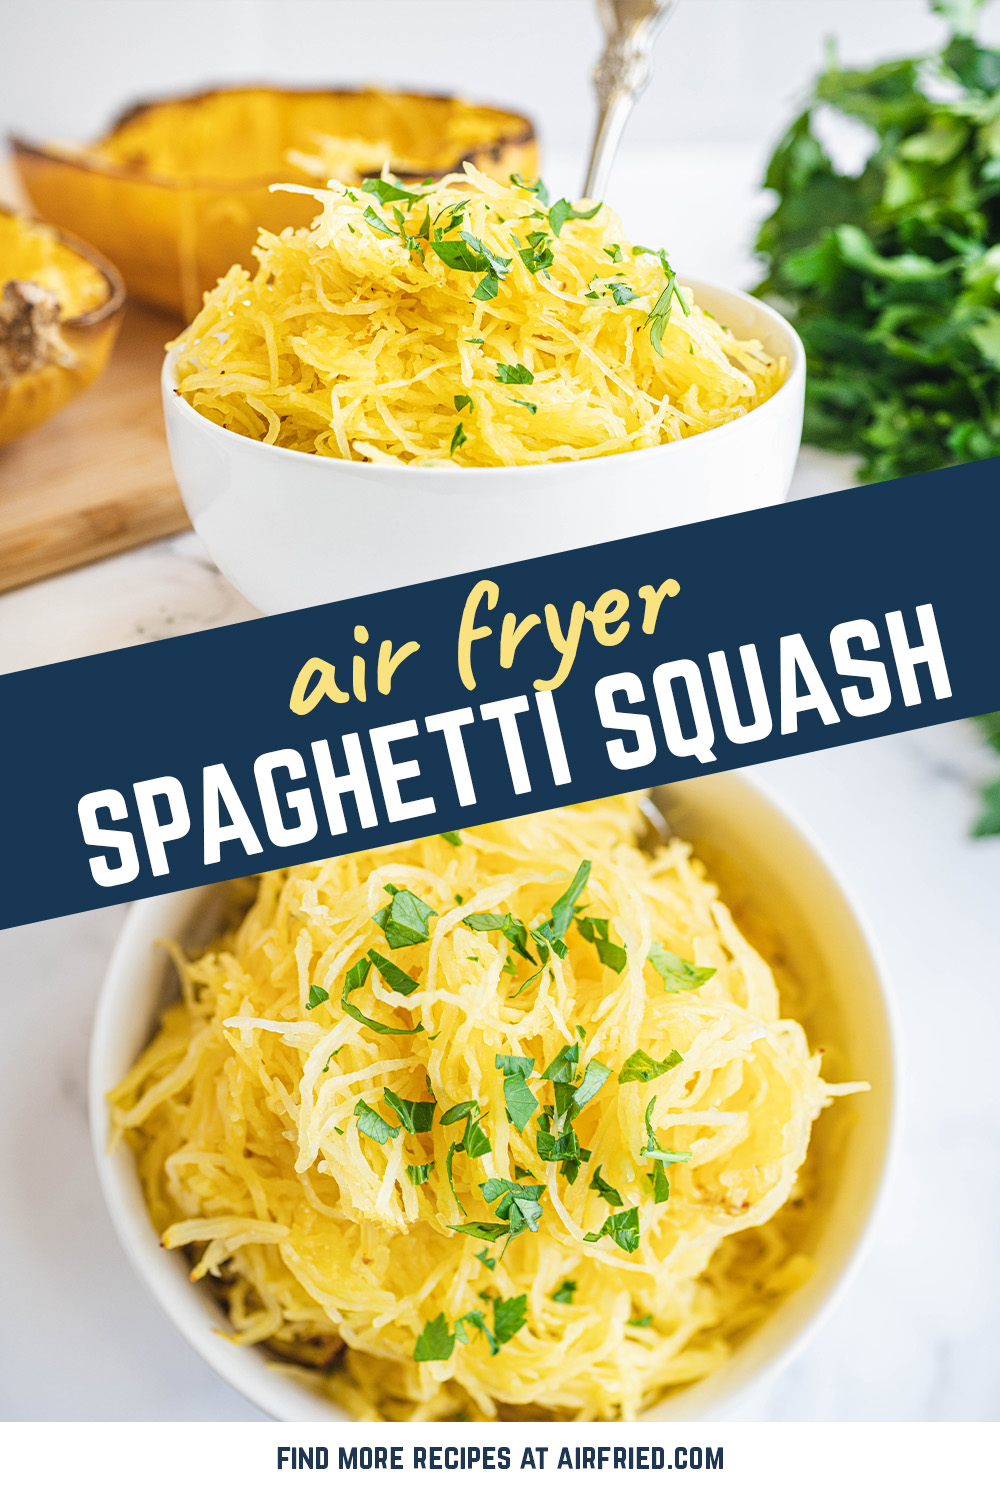 Spaghetti squash in the air fryer is a perfect way to easily cook a low-carb base for your pasta dish.